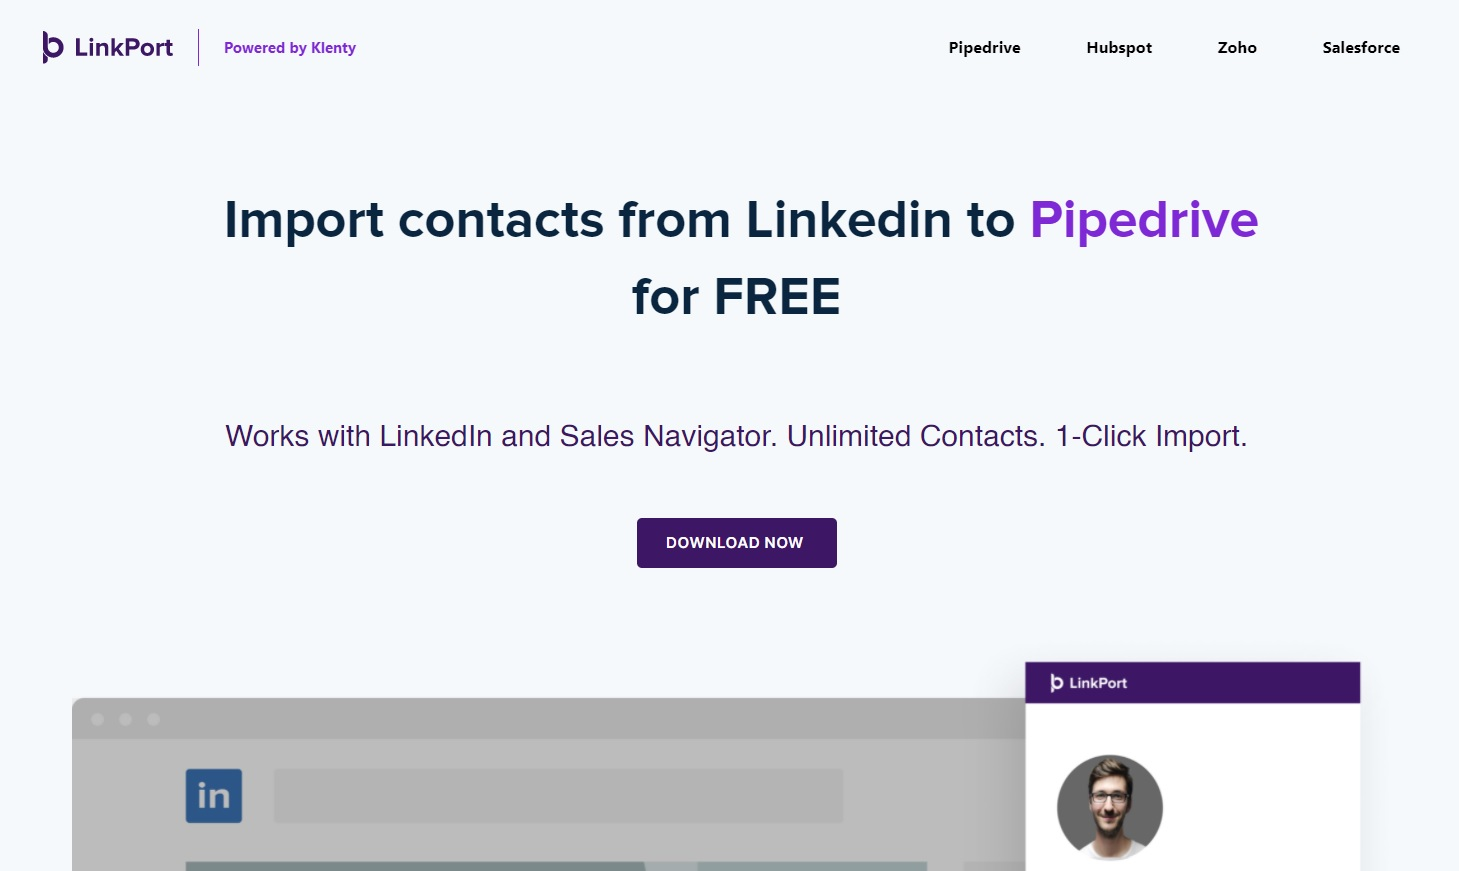 A screenshot of LinkedIn prospecting tool, Linkport's landing page.